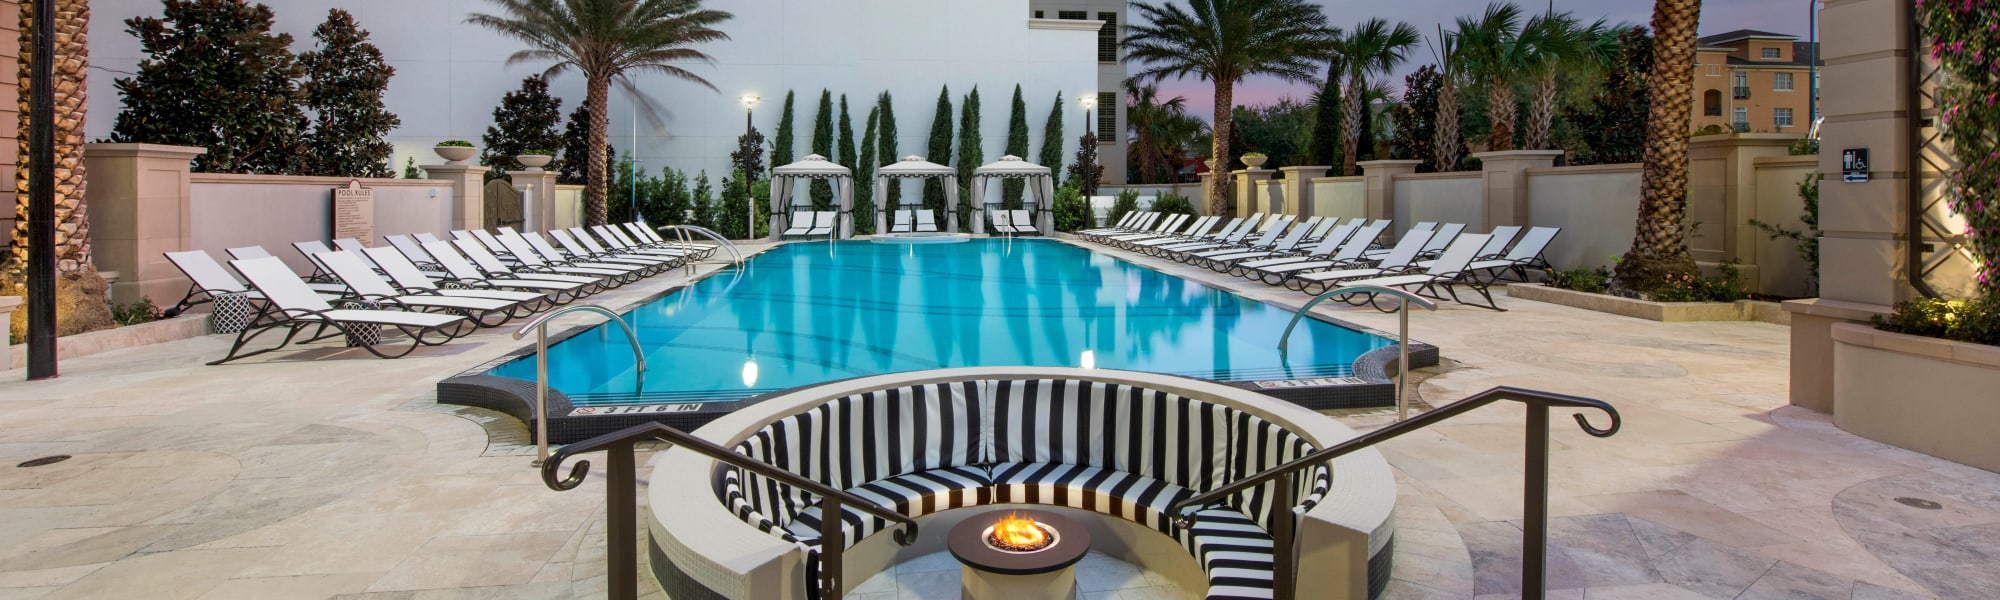 Amenities at Olympus Harbour Island in Tampa, Florida